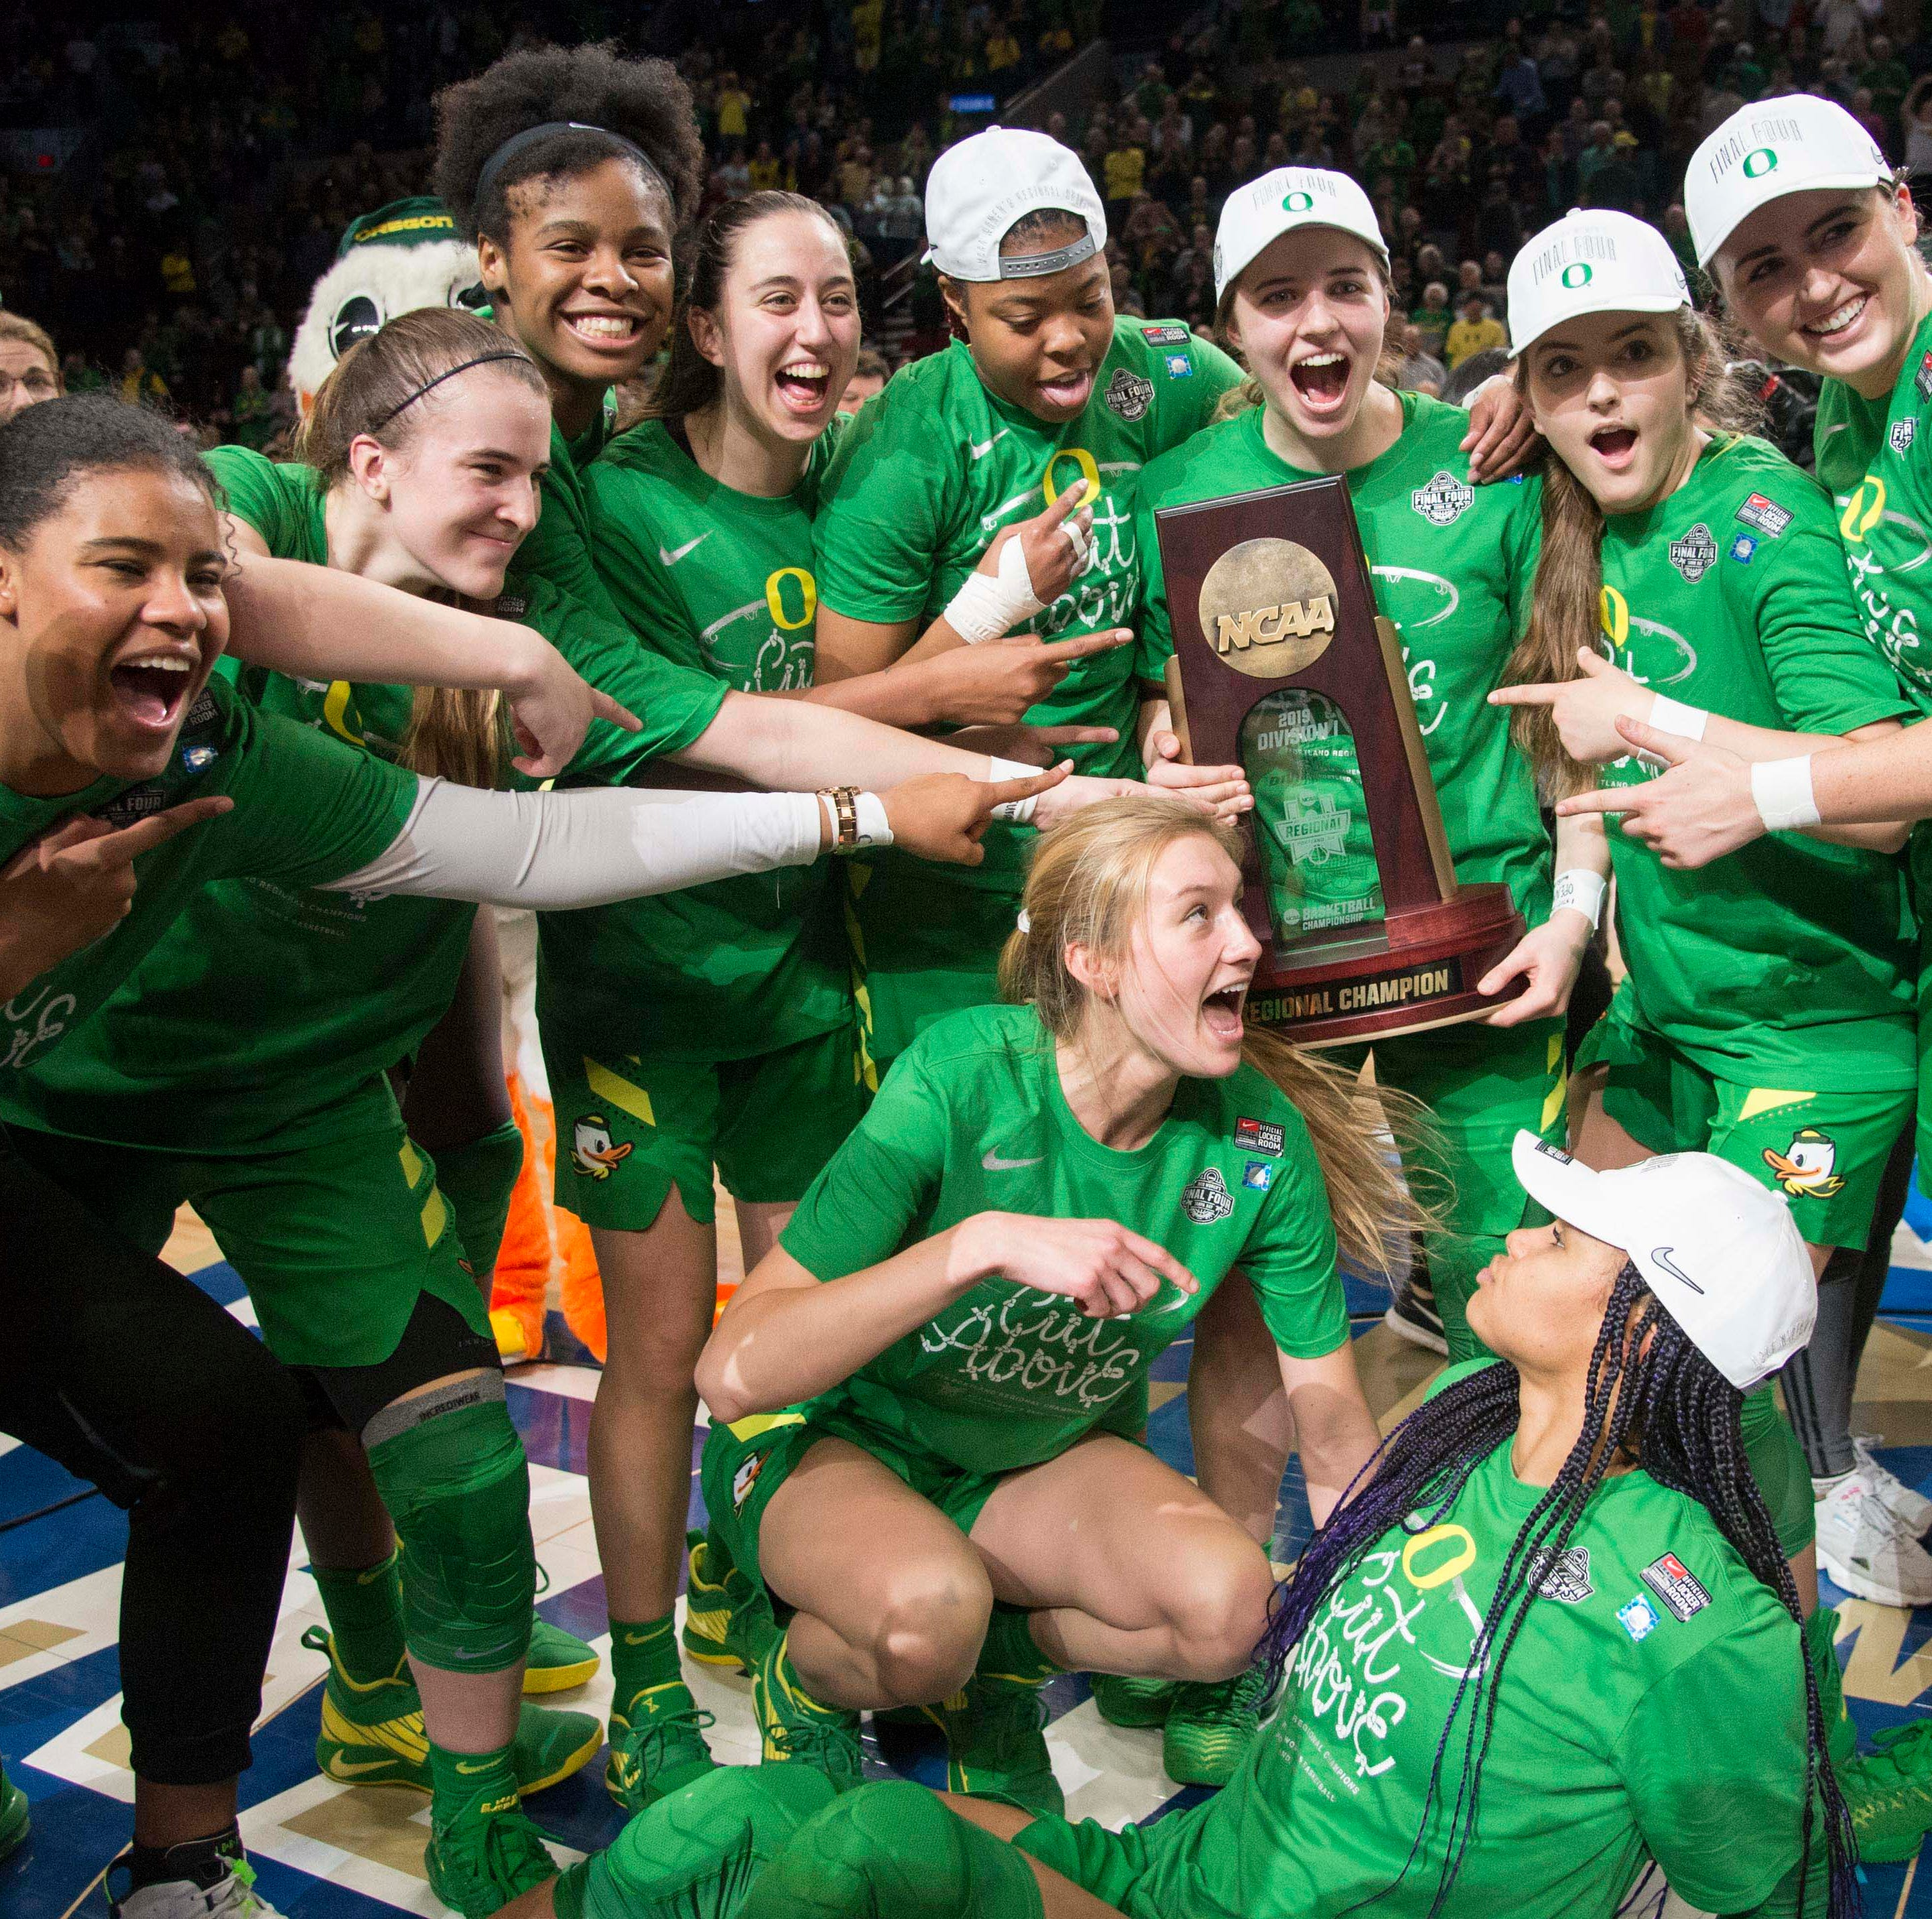 Oregon Ducks women's basketball headed to the NCAA Final Four